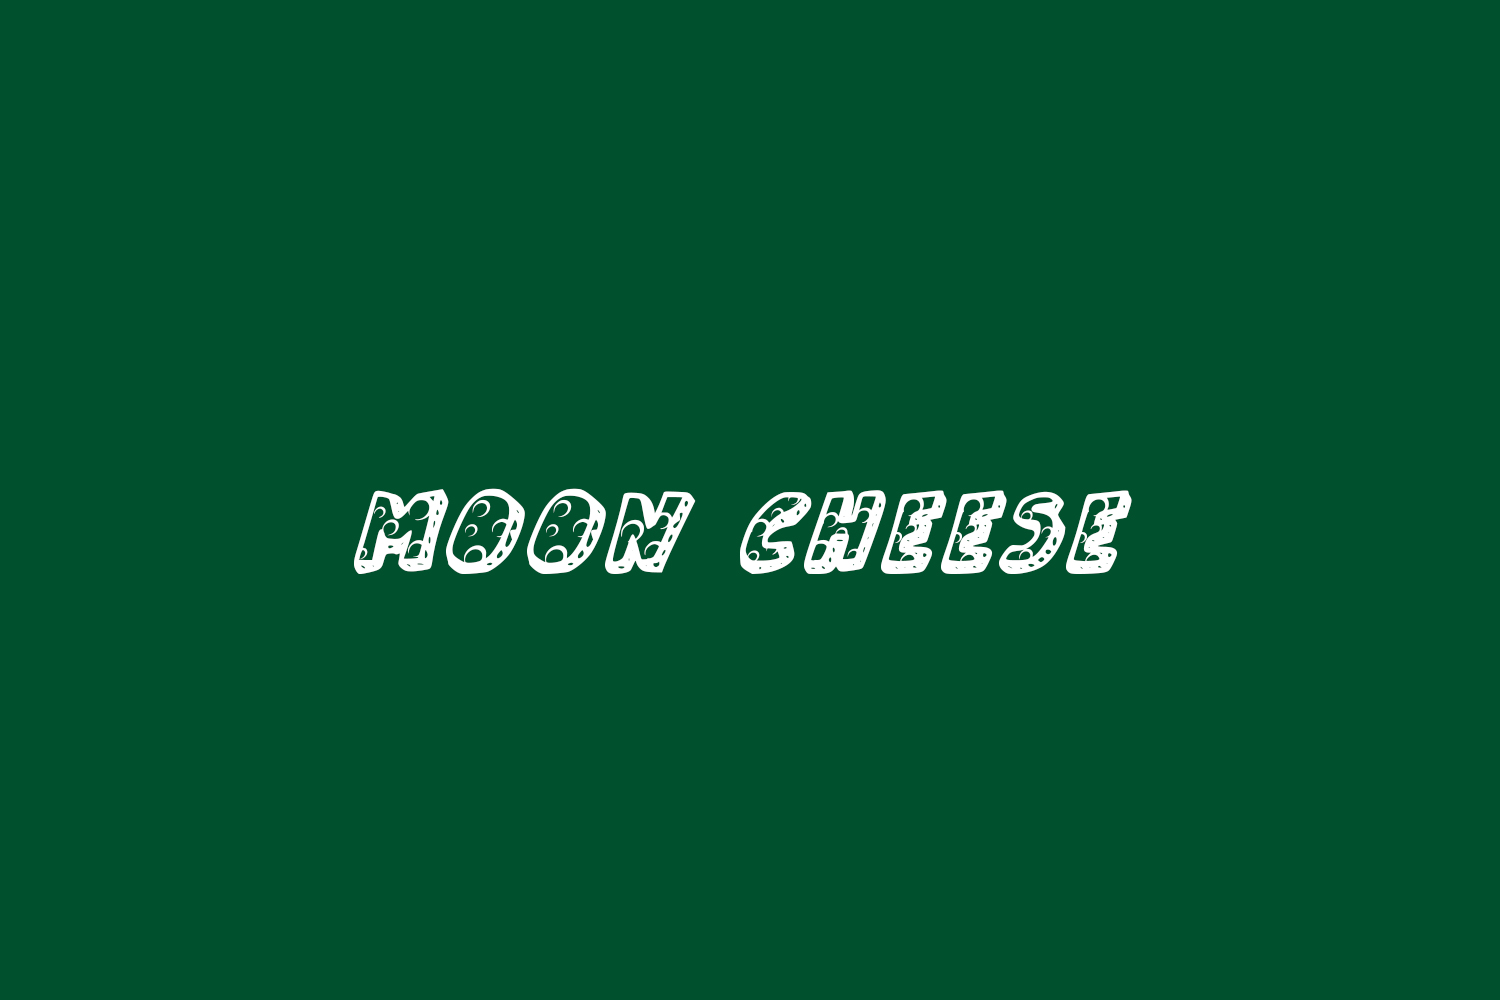 Moon Cheese Free Font